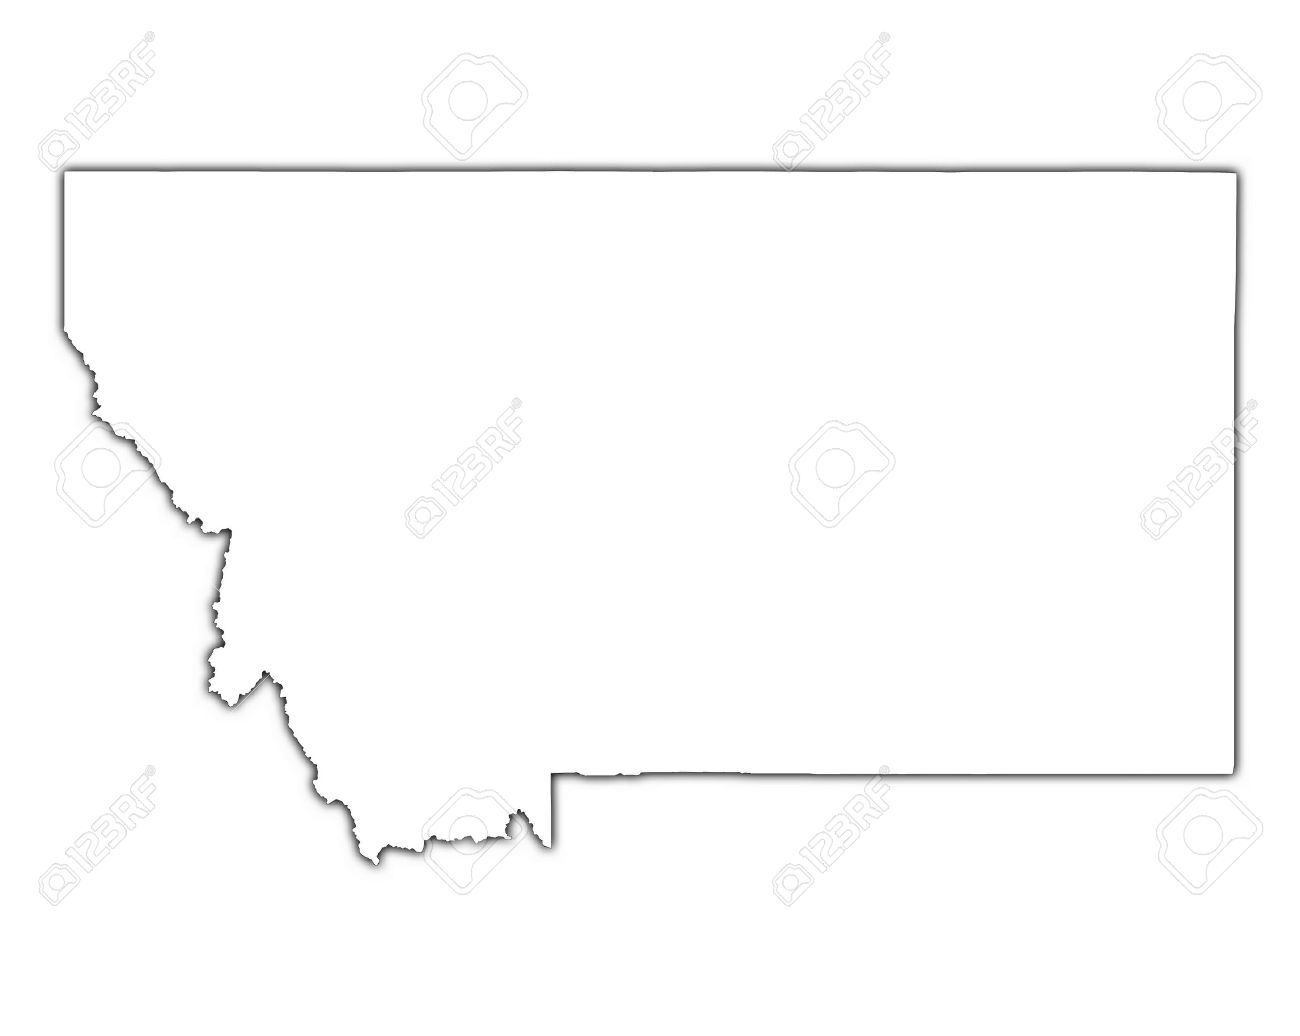 Blank States Map Dr Odd United States Of America USA Free Maps - Us blank state map